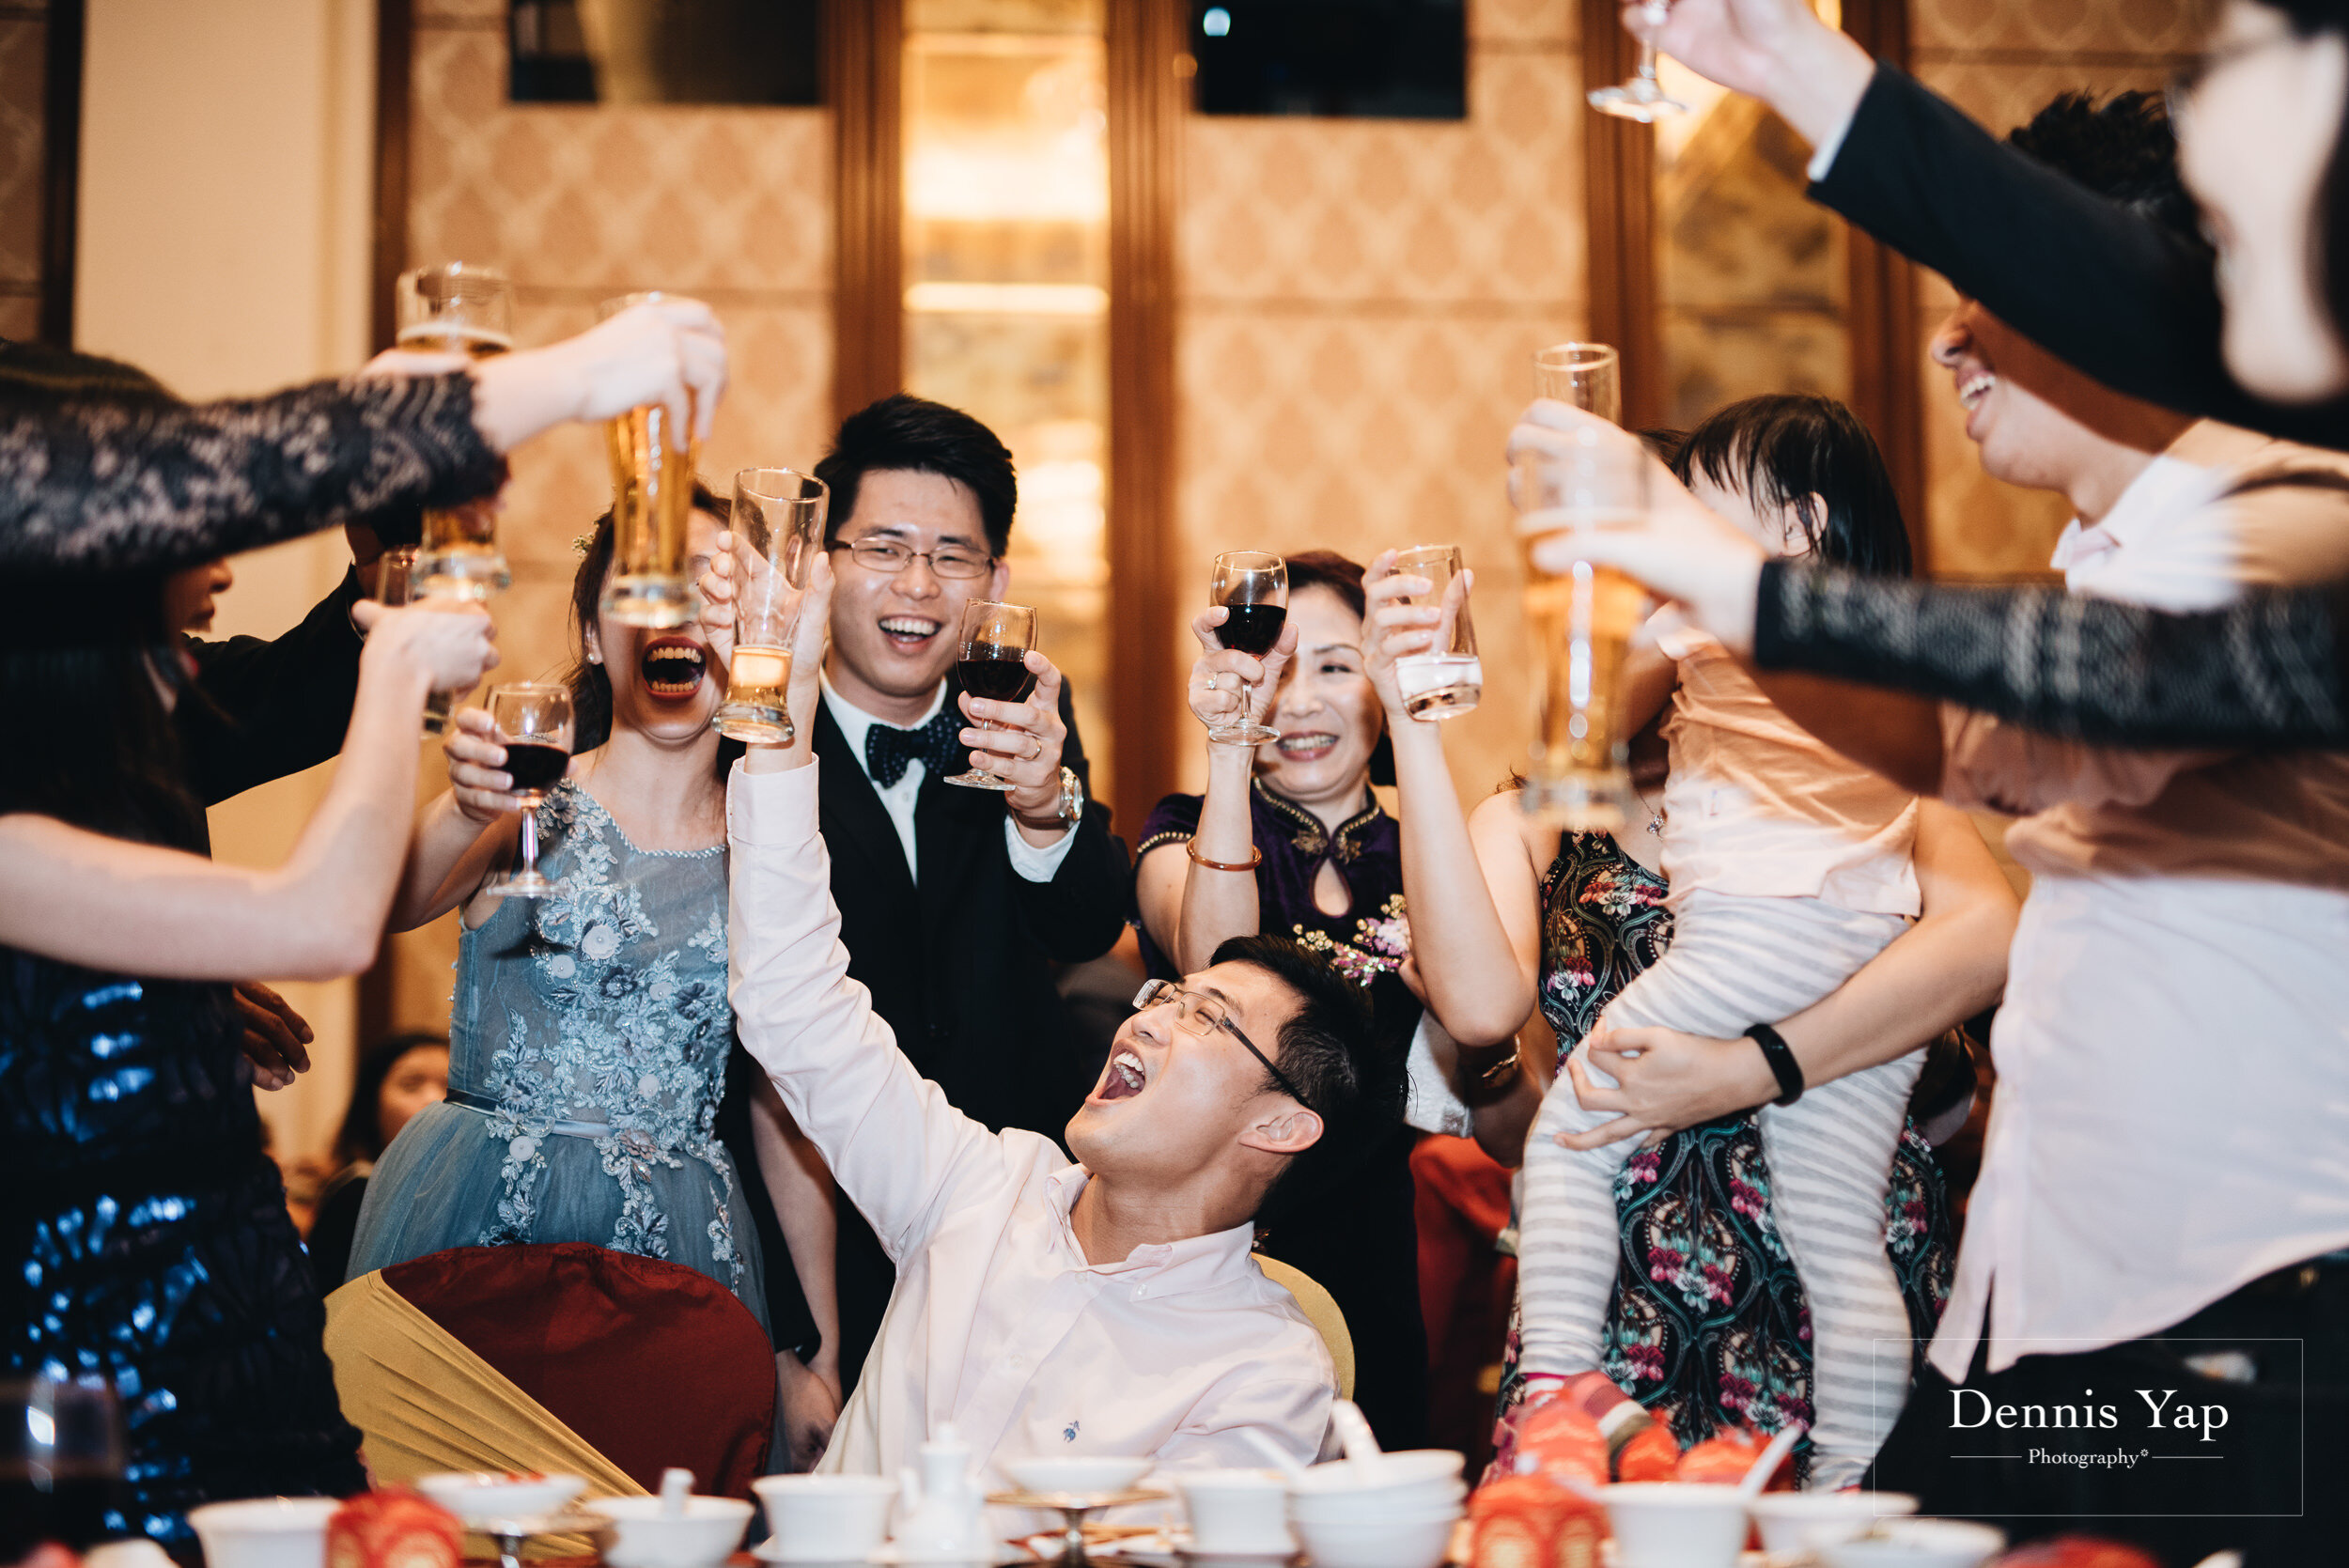 louis su yan wedding dinner dorsett grand subang dennis yap photography-127.jpg